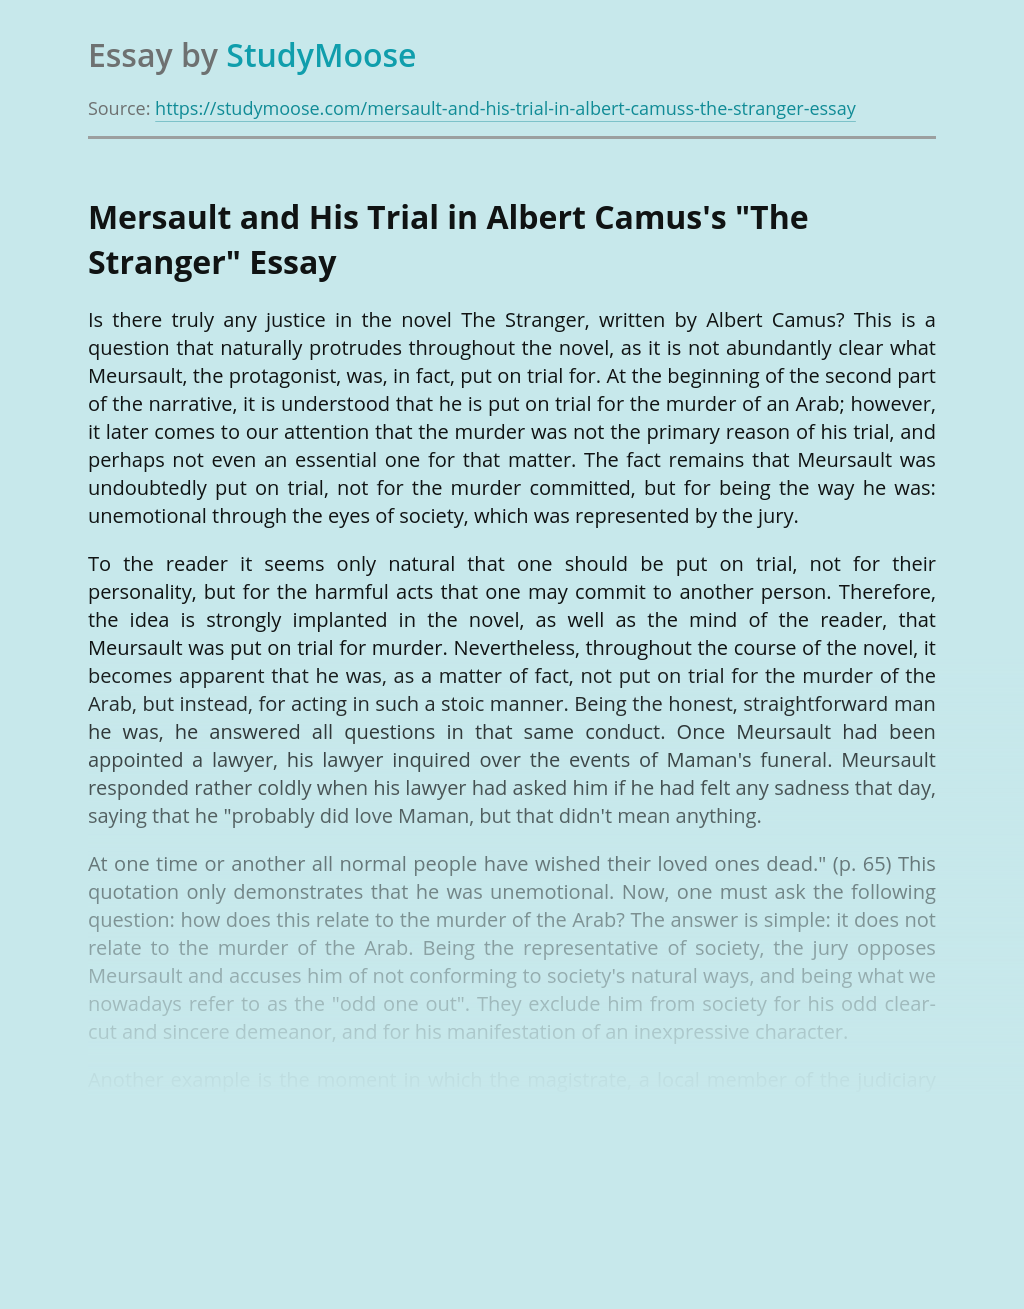 """Mersault and His Trial in Albert Camus's """"The Stranger"""""""